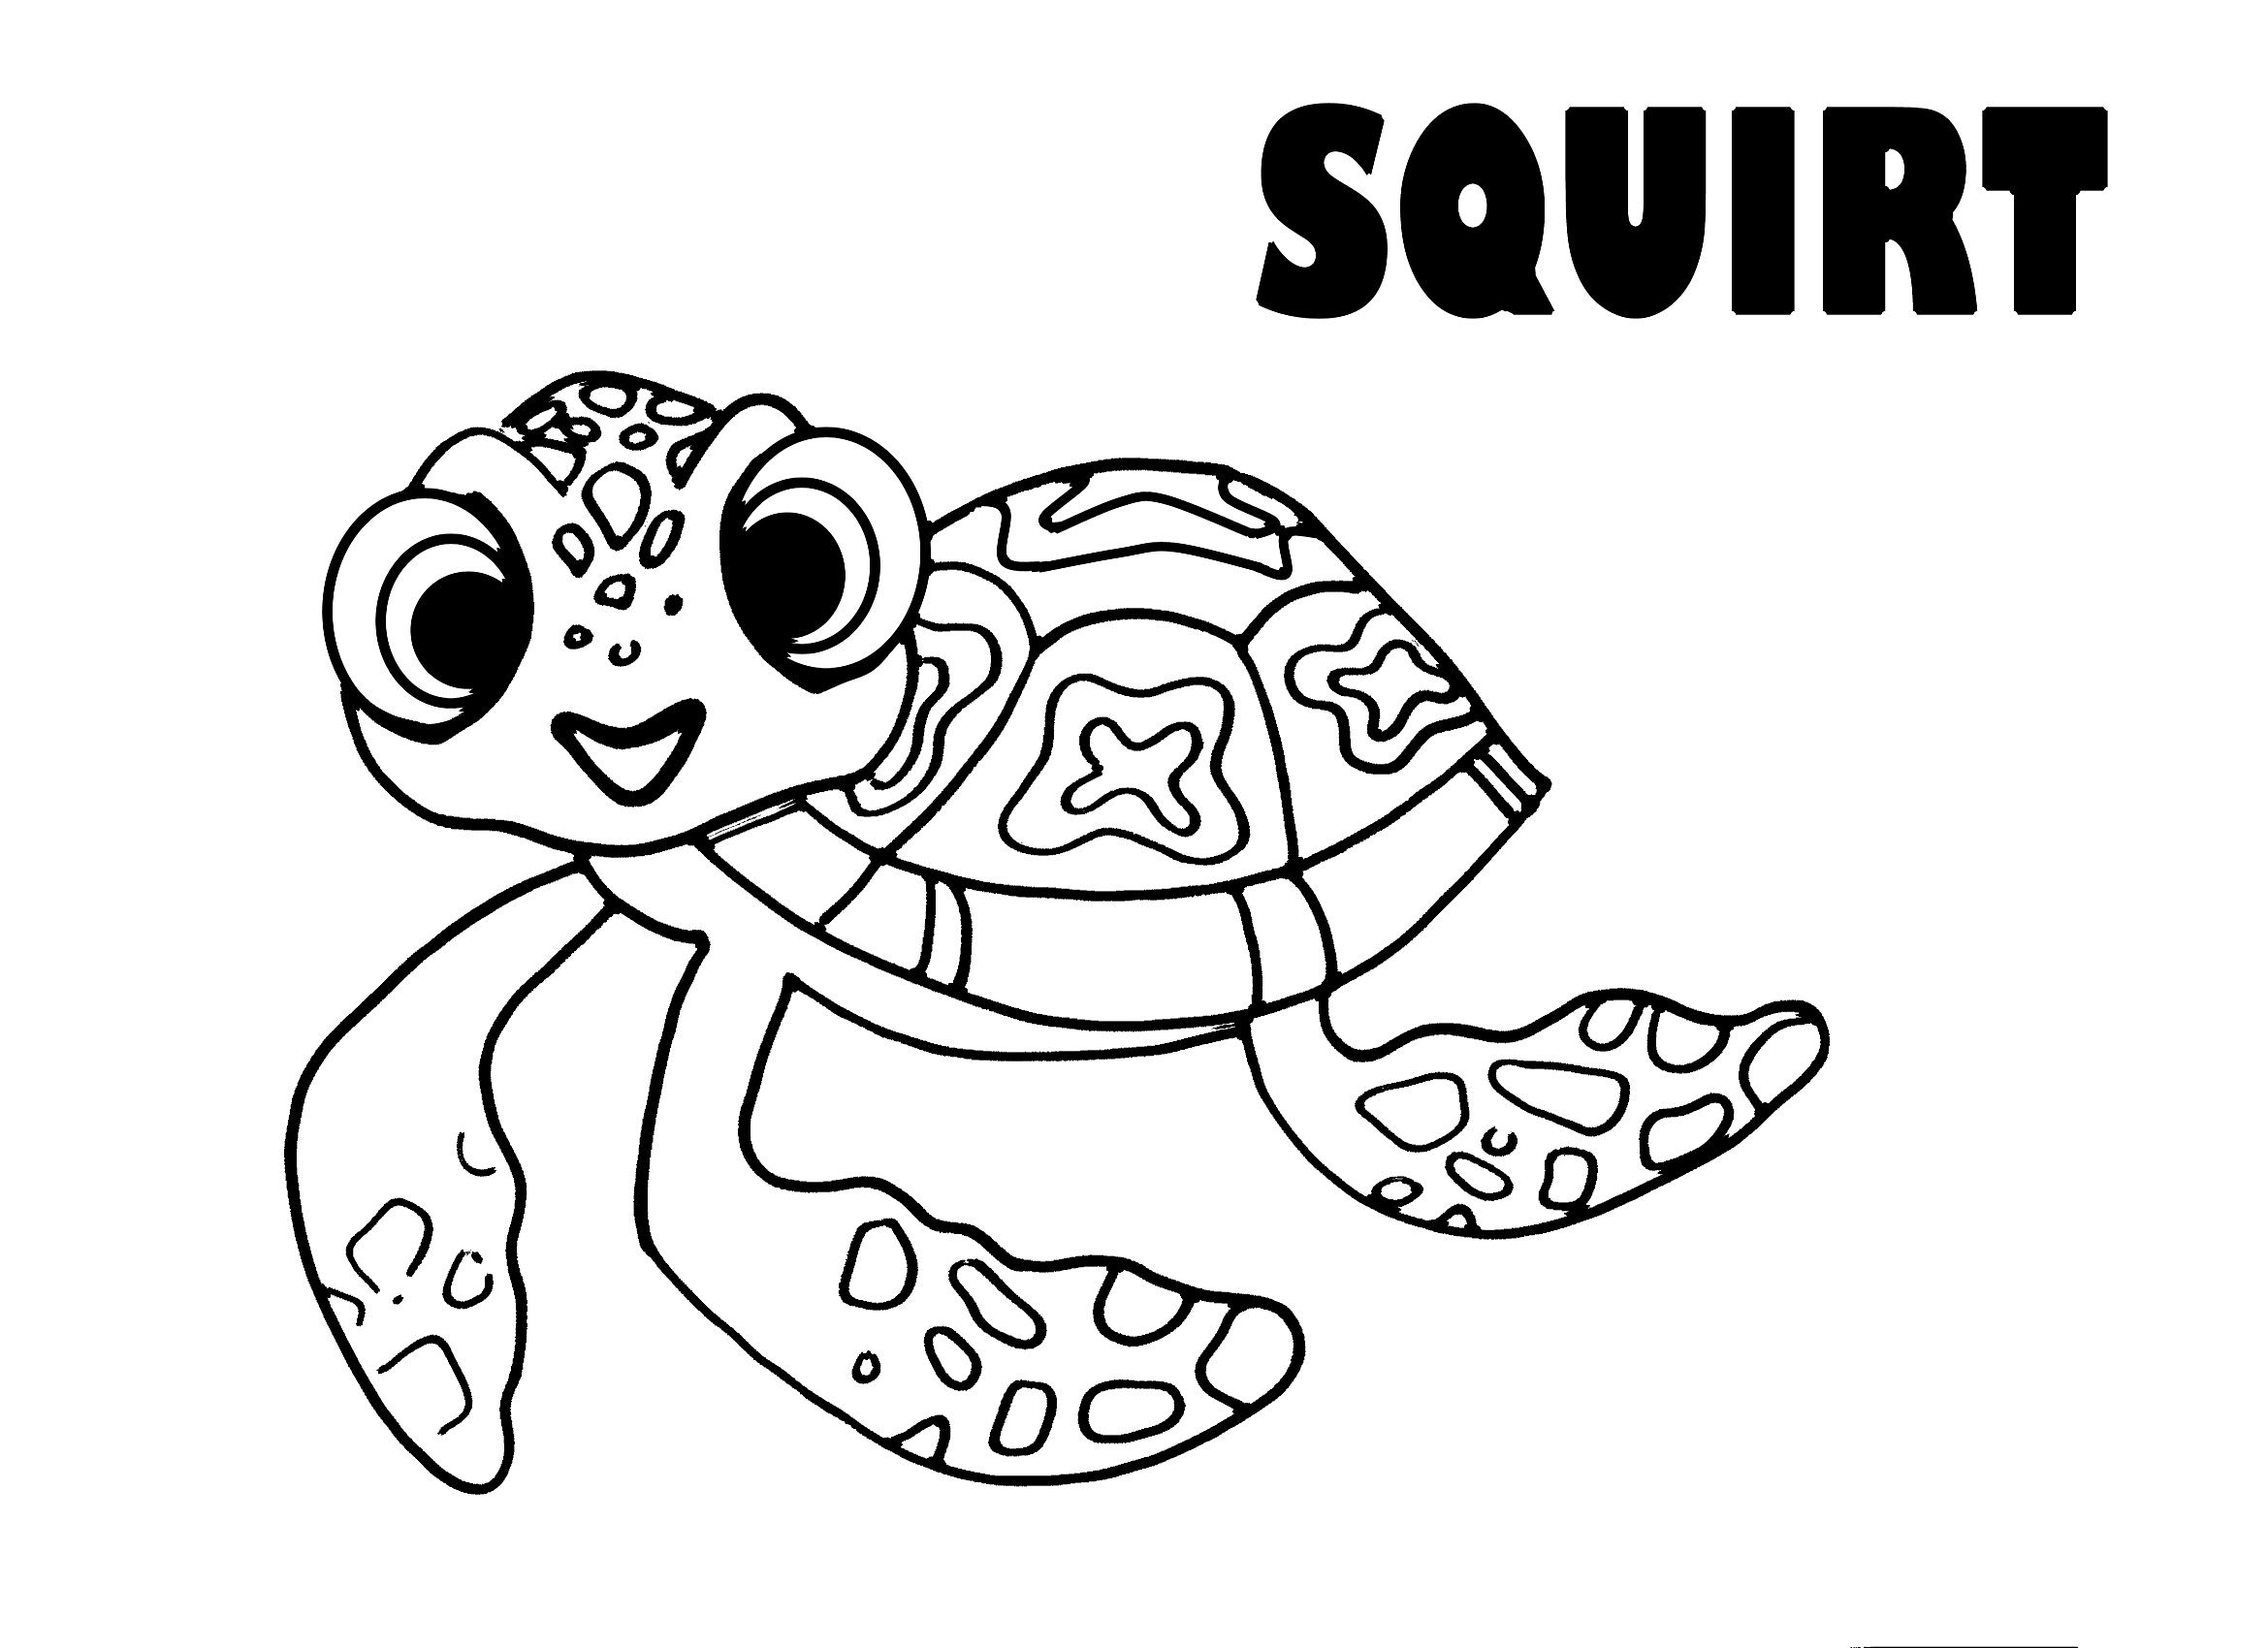 From Finding Nemo Coloring Page